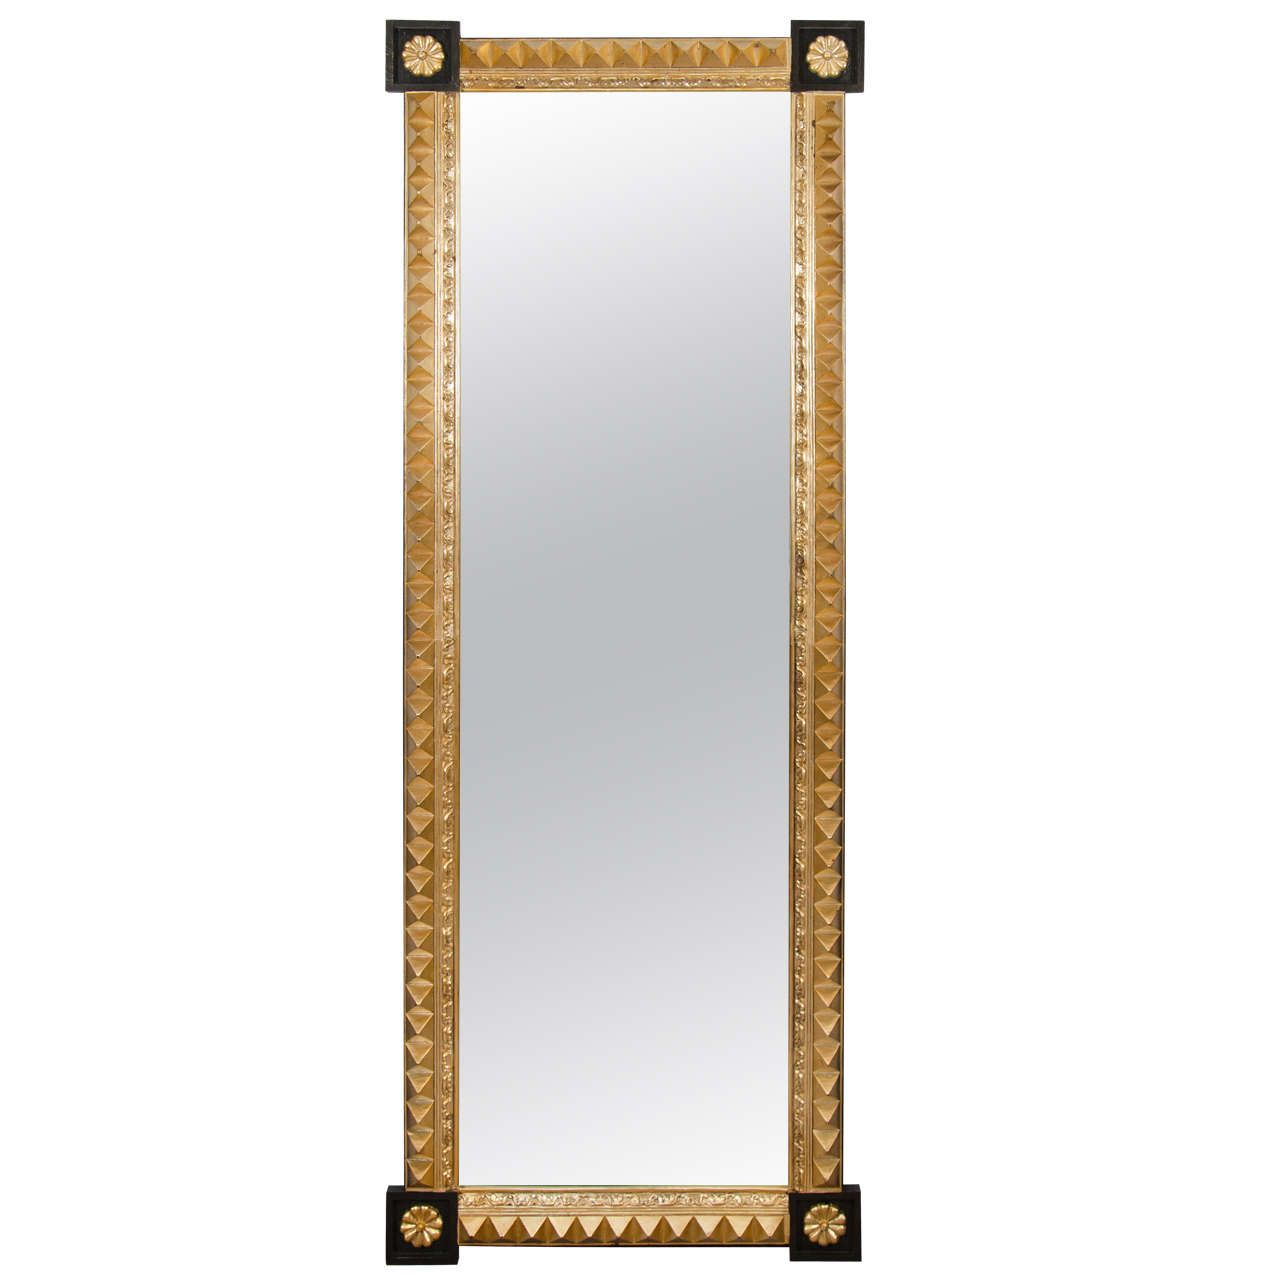 A Black and Gold Studded, Full-Length Mirror